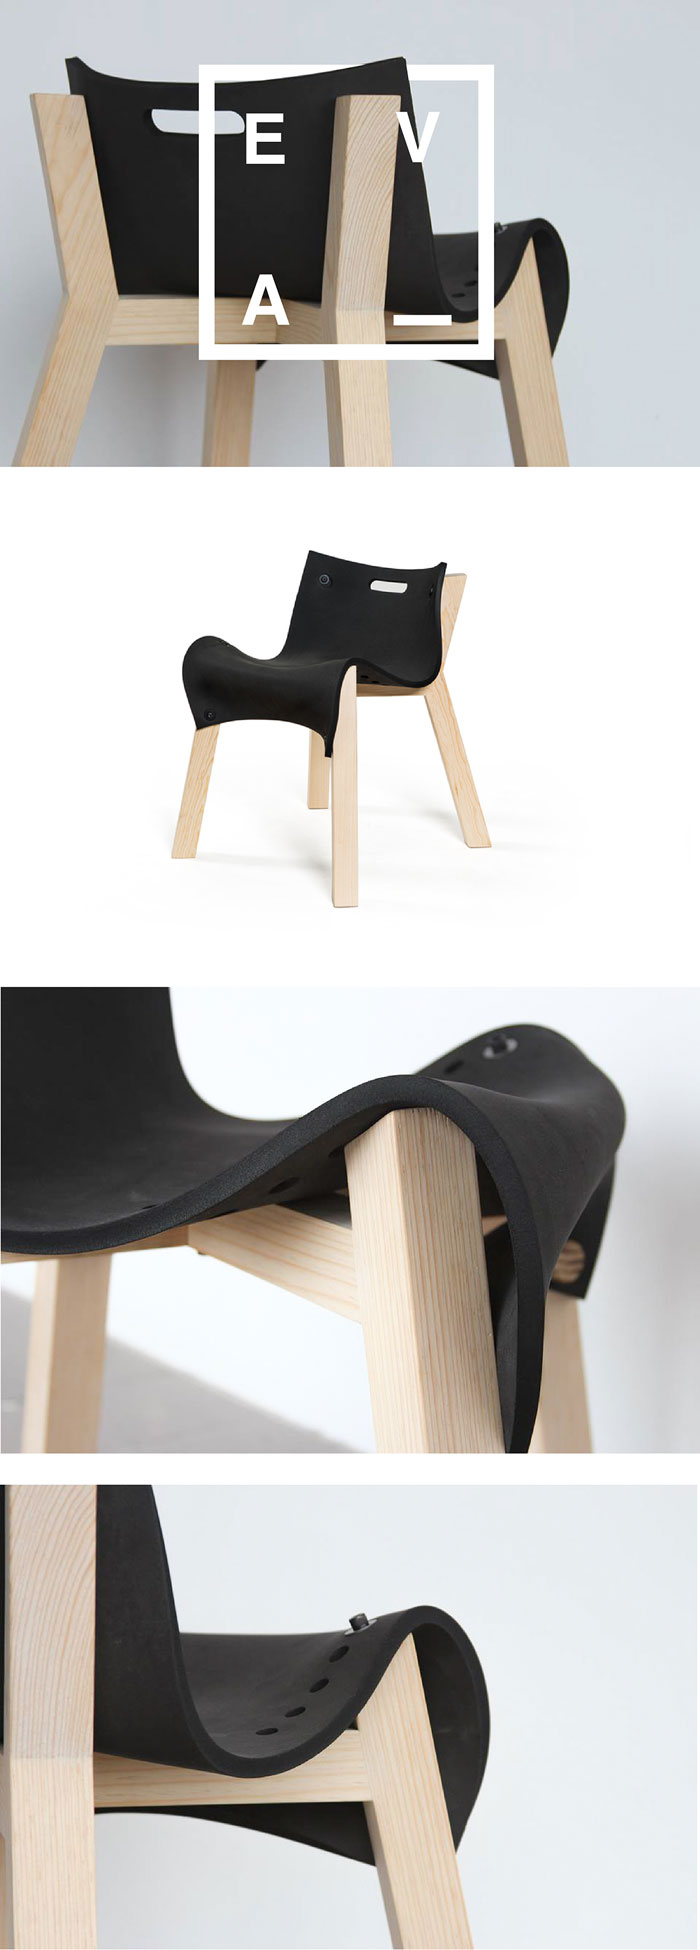 La eva chair design by david ortiz for Industrial design chair